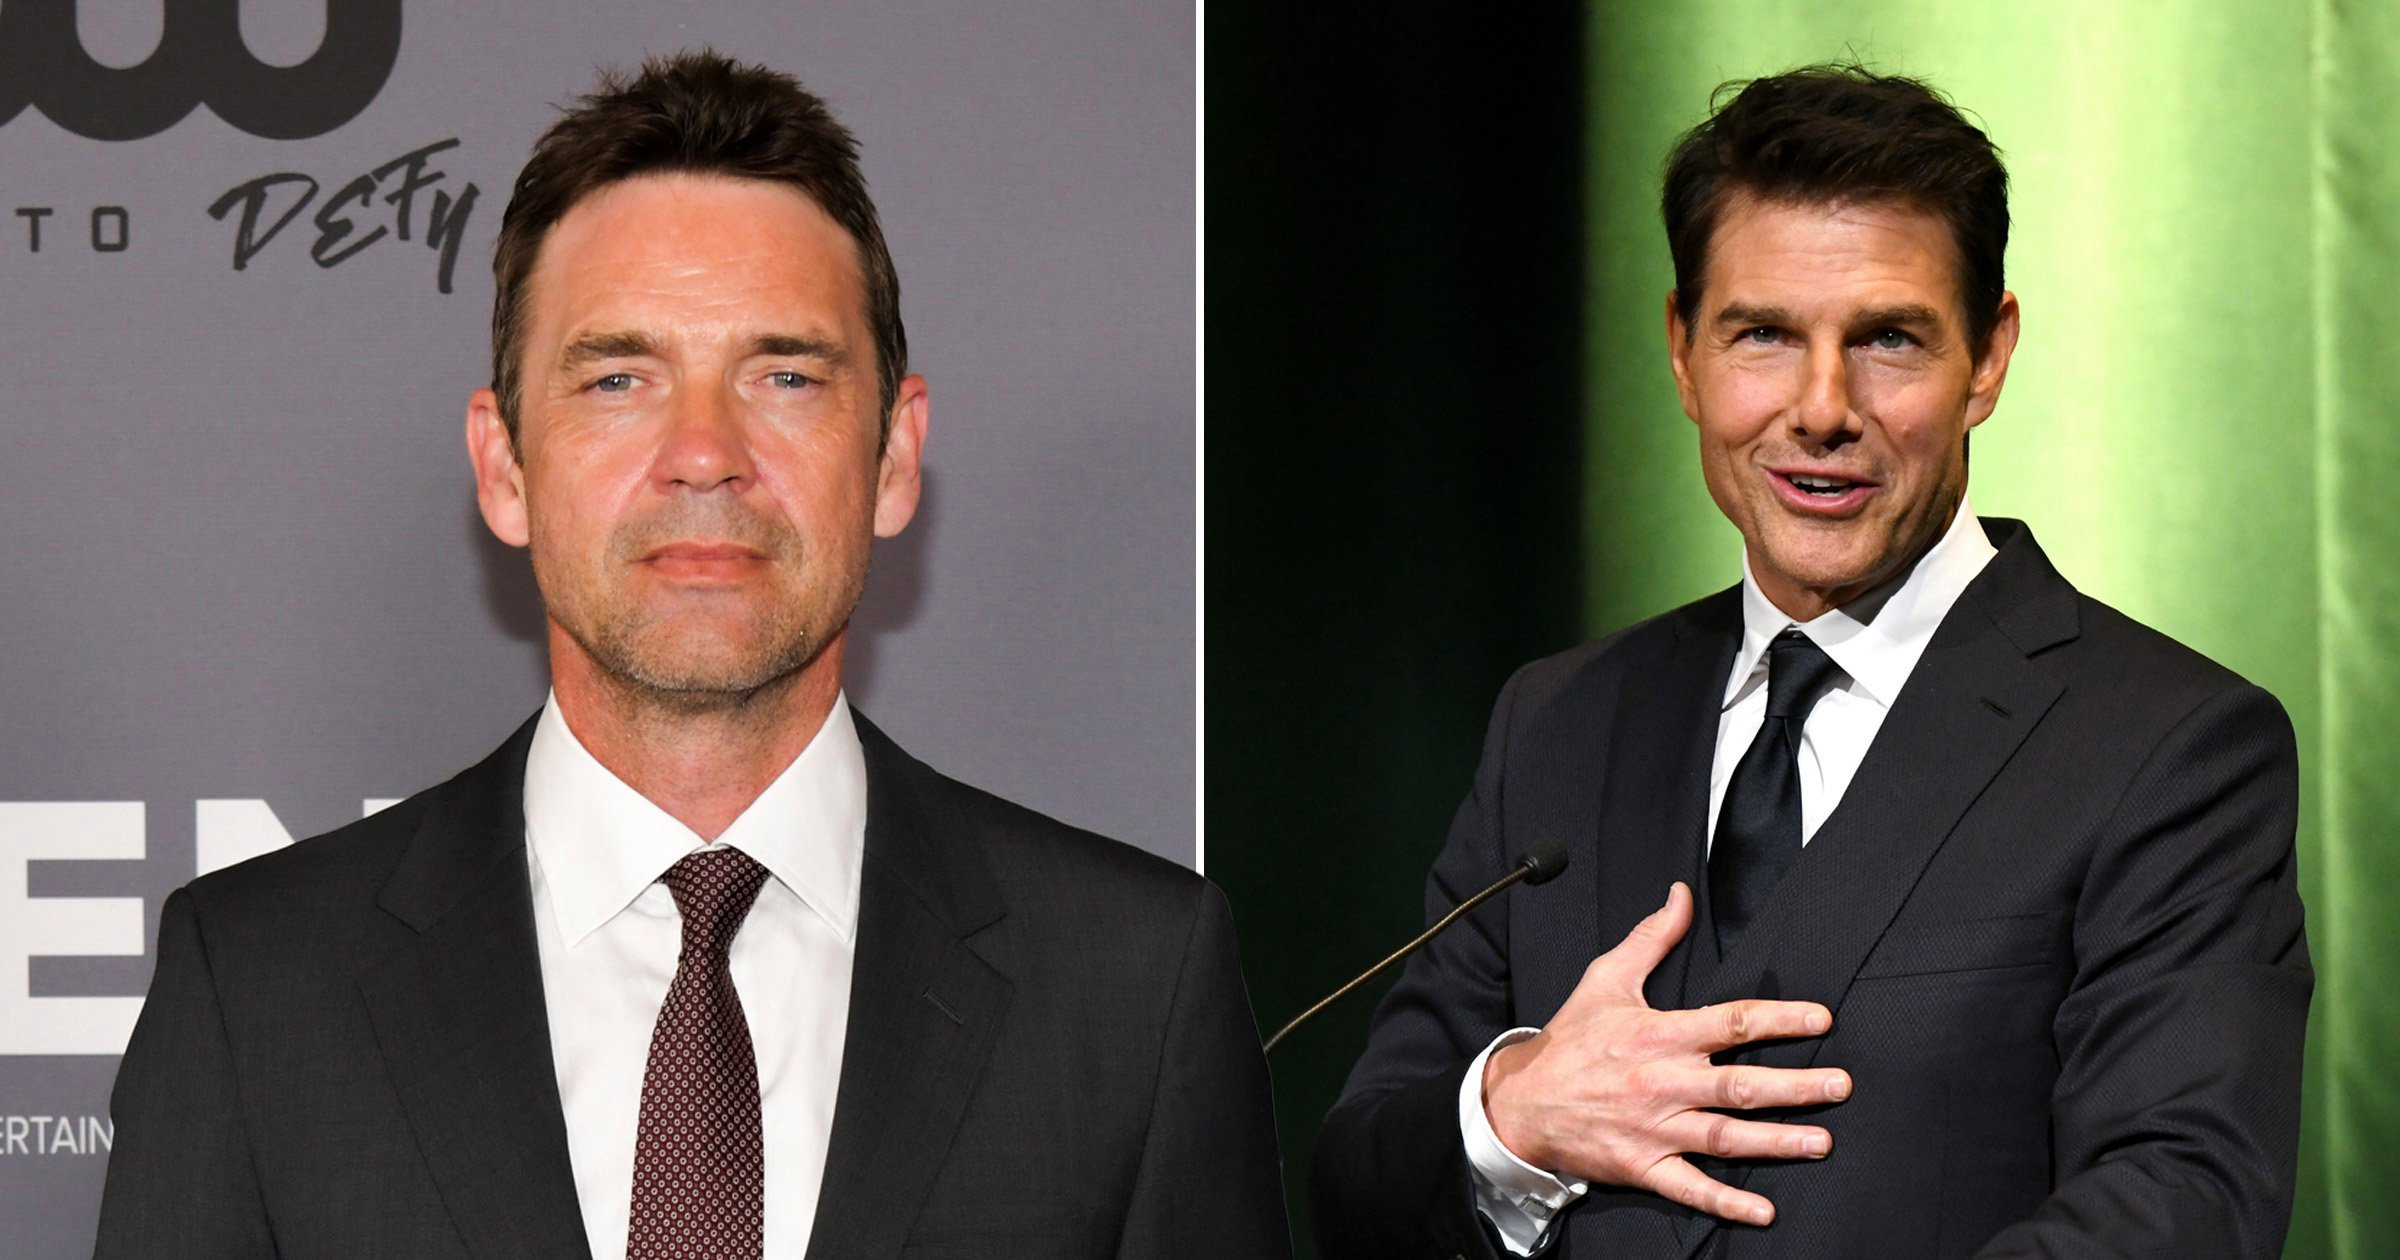 Dougray Scott As Wolverine? Tom Cruise Prevented Him? Here's What We Know